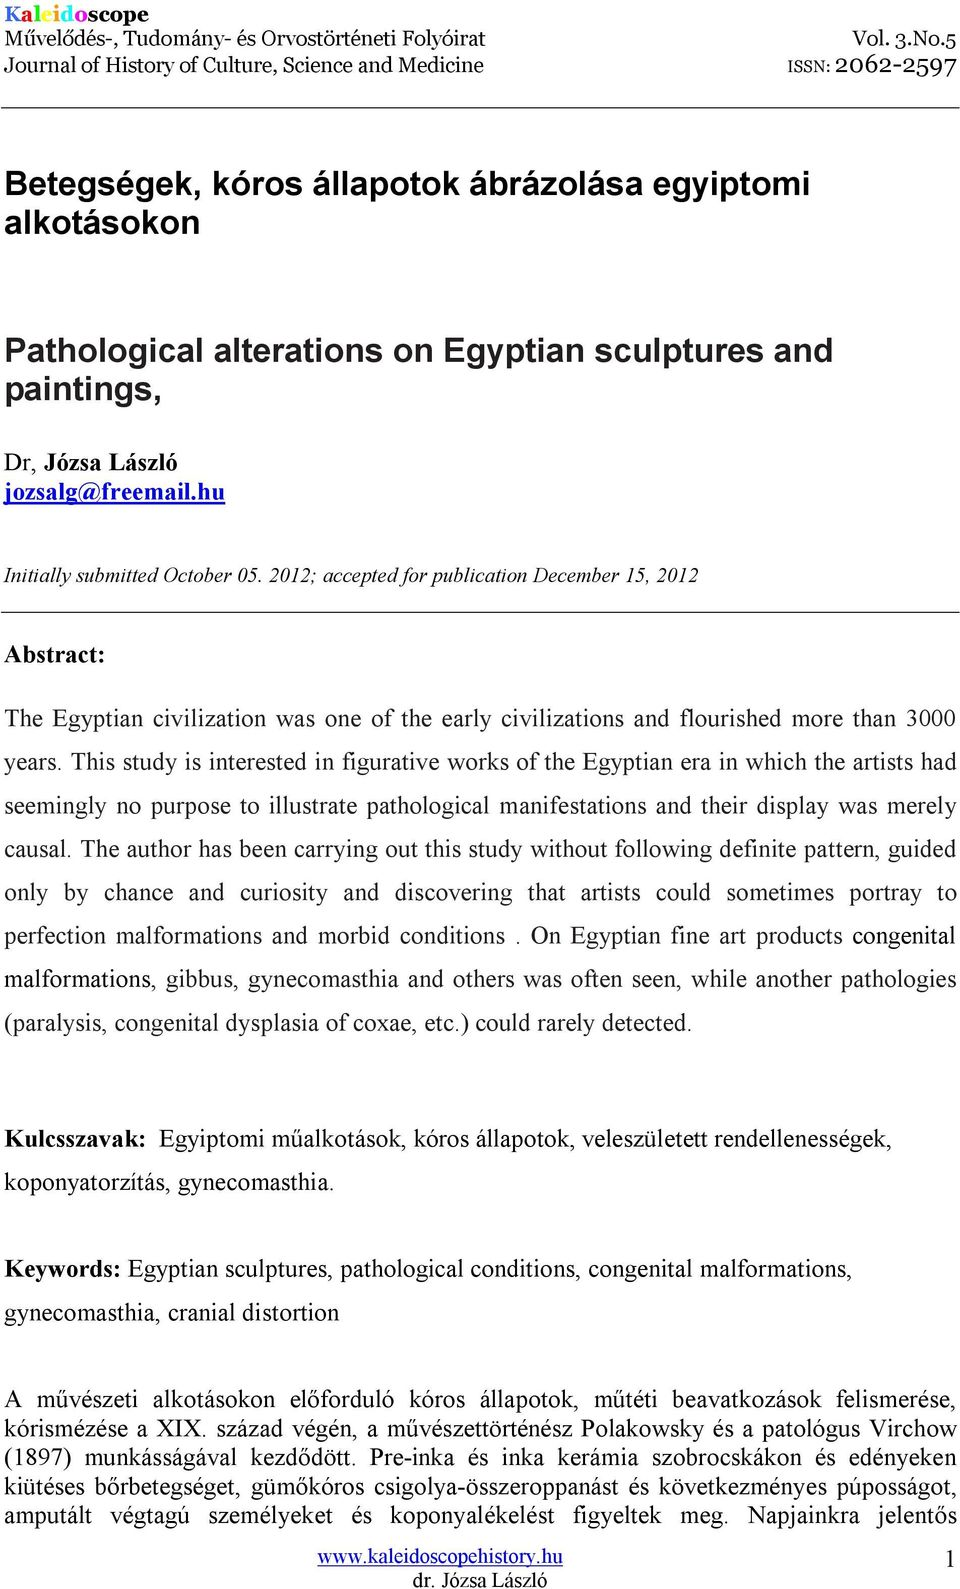 This study is interested in figurative works of the Egyptian era in which the artists had seemingly no purpose to illustrate pathological manifestations and their display was merely causal.